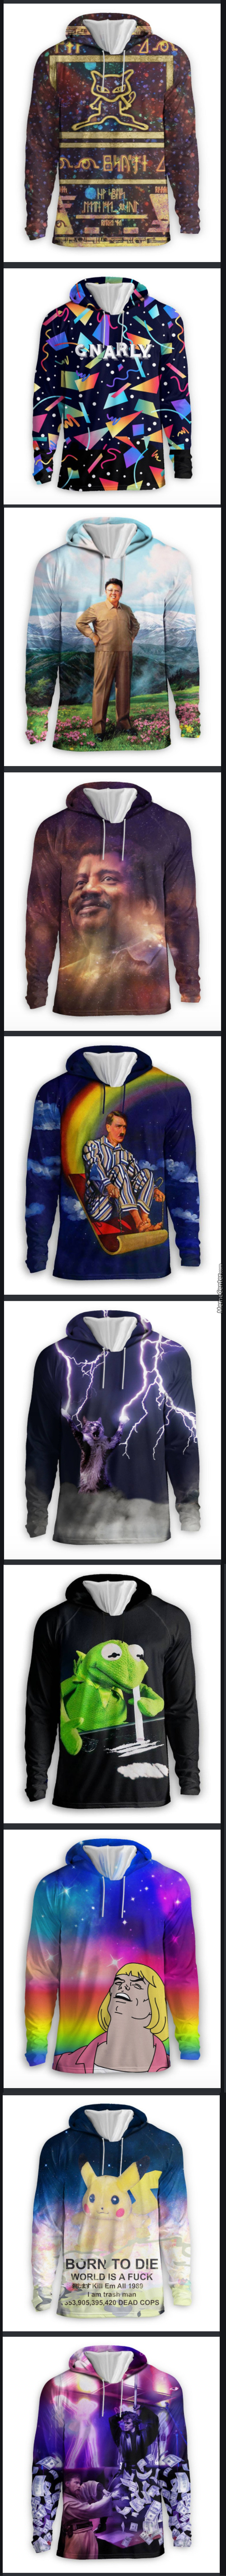 Hoodie Porn From The Internet